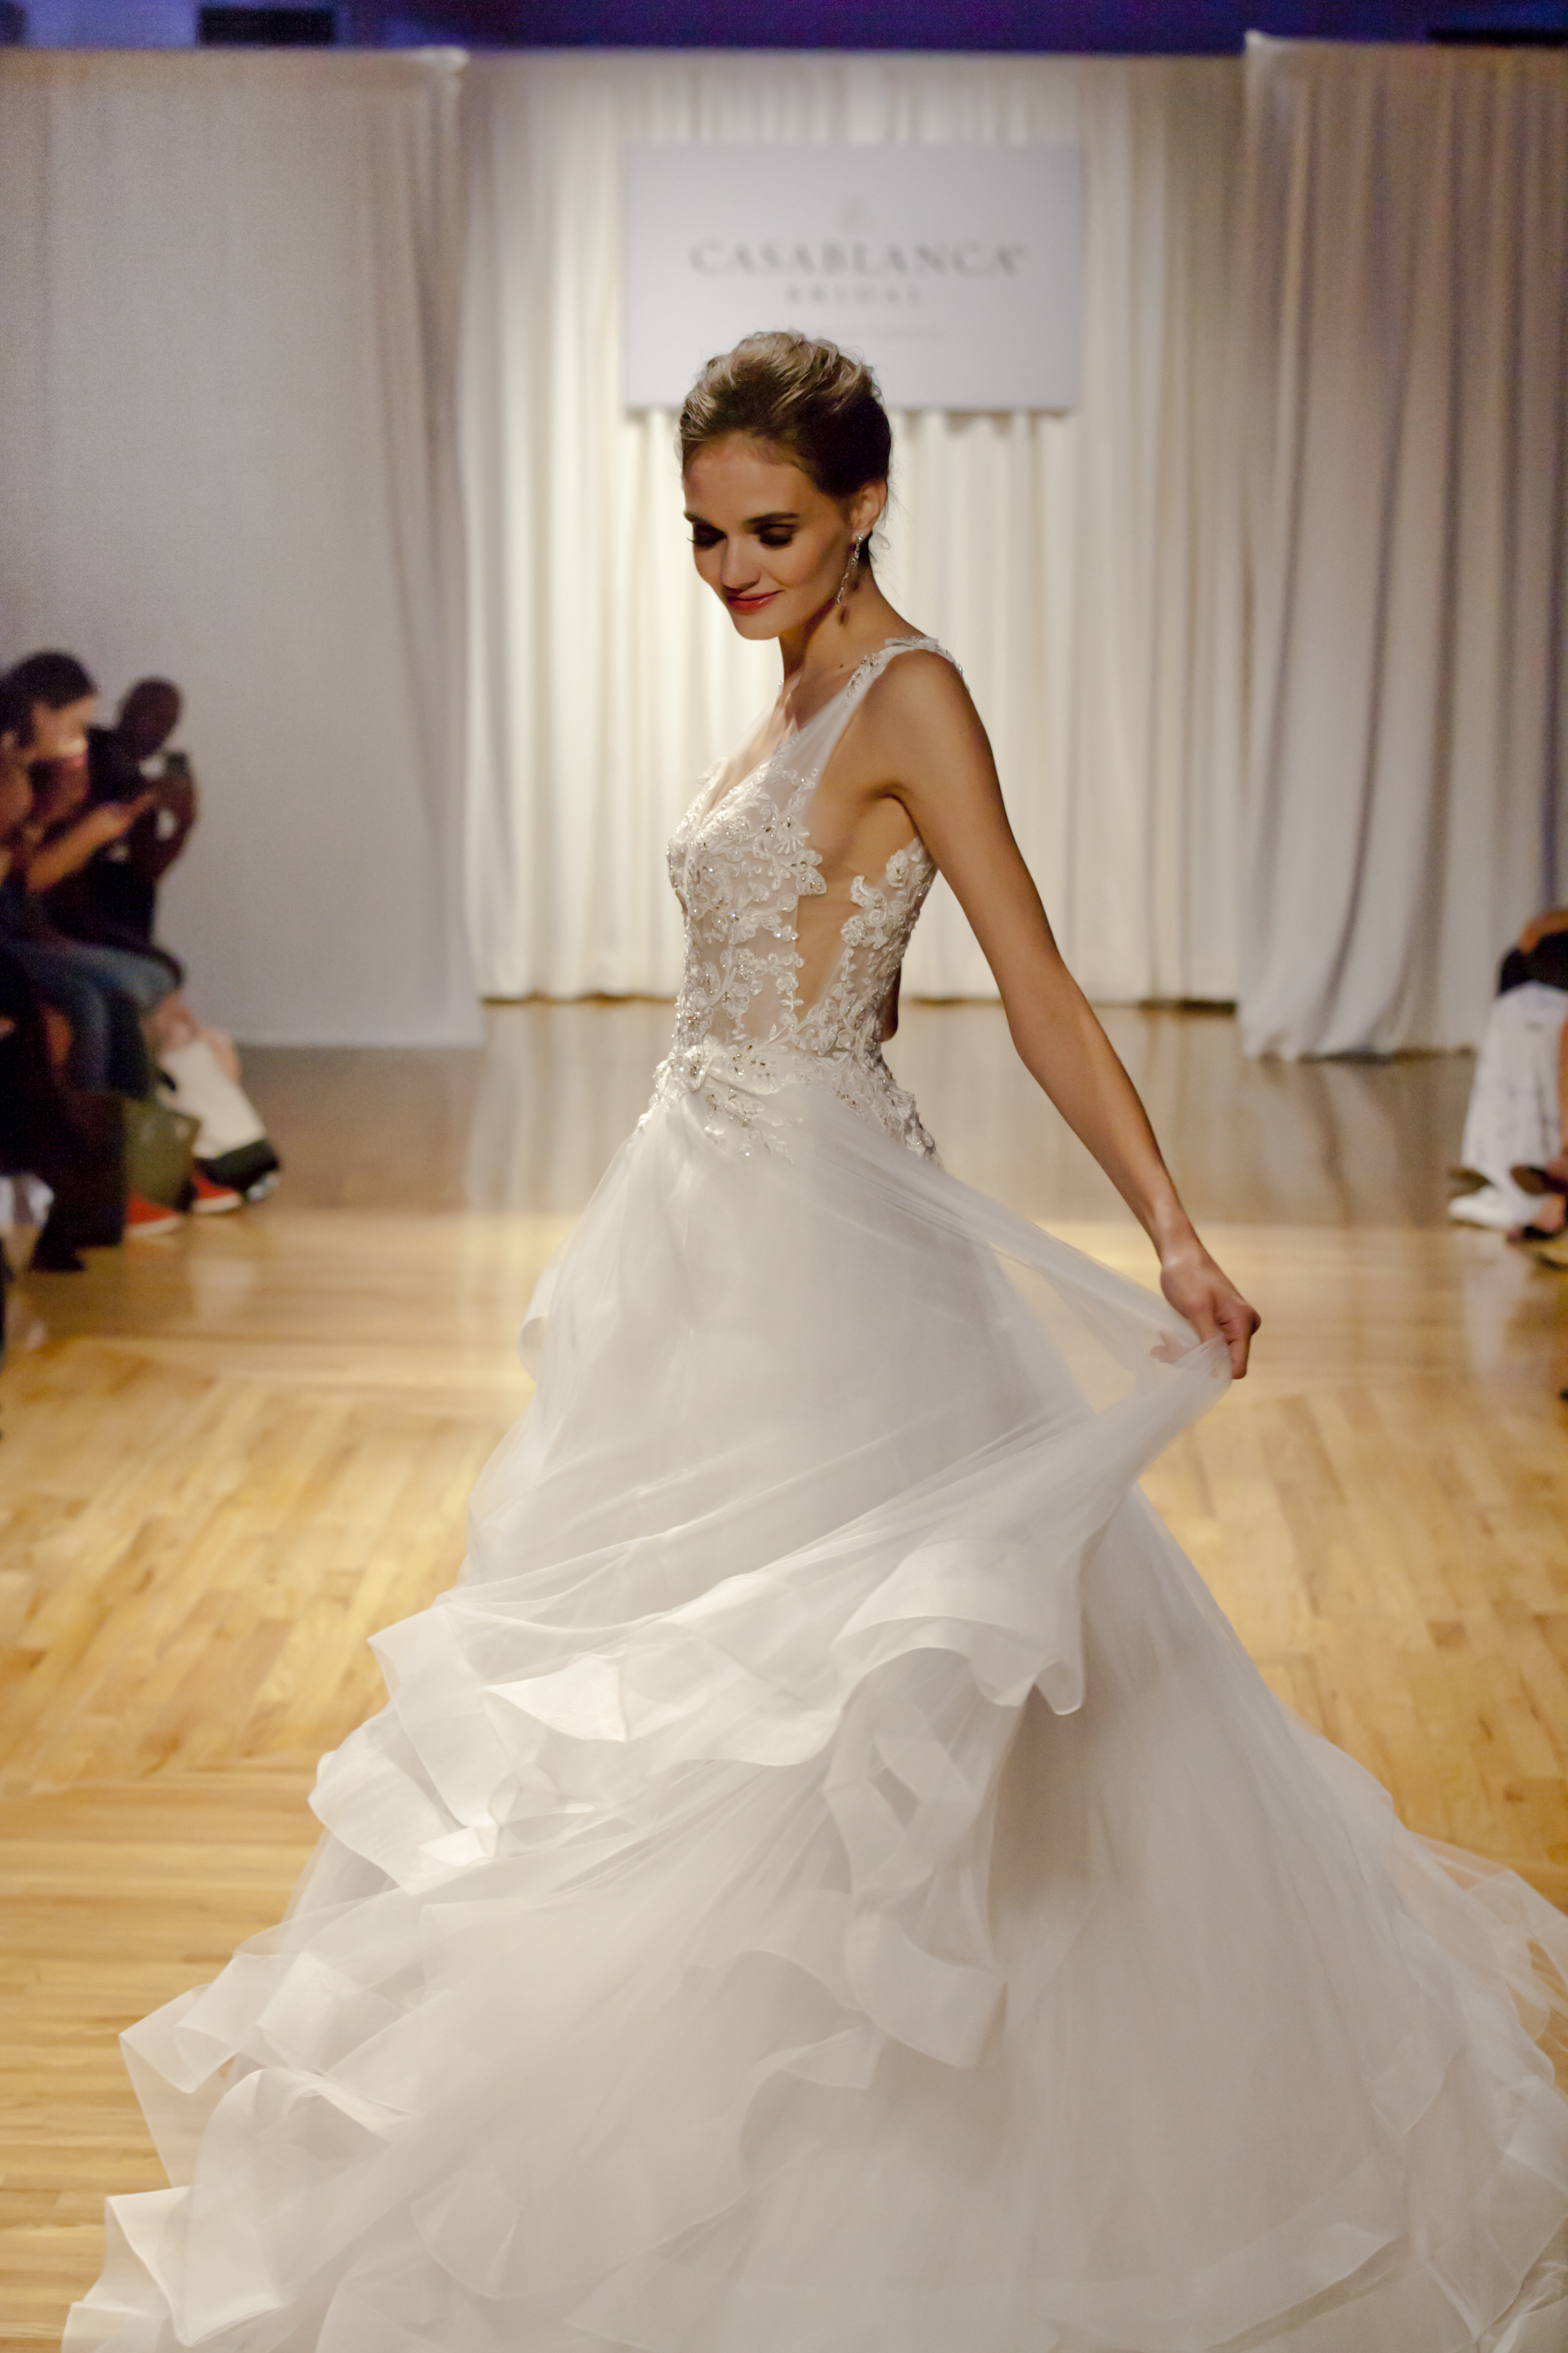 Casablanca Bridal Press Show Wedding Dress With Lace Bodice Preview